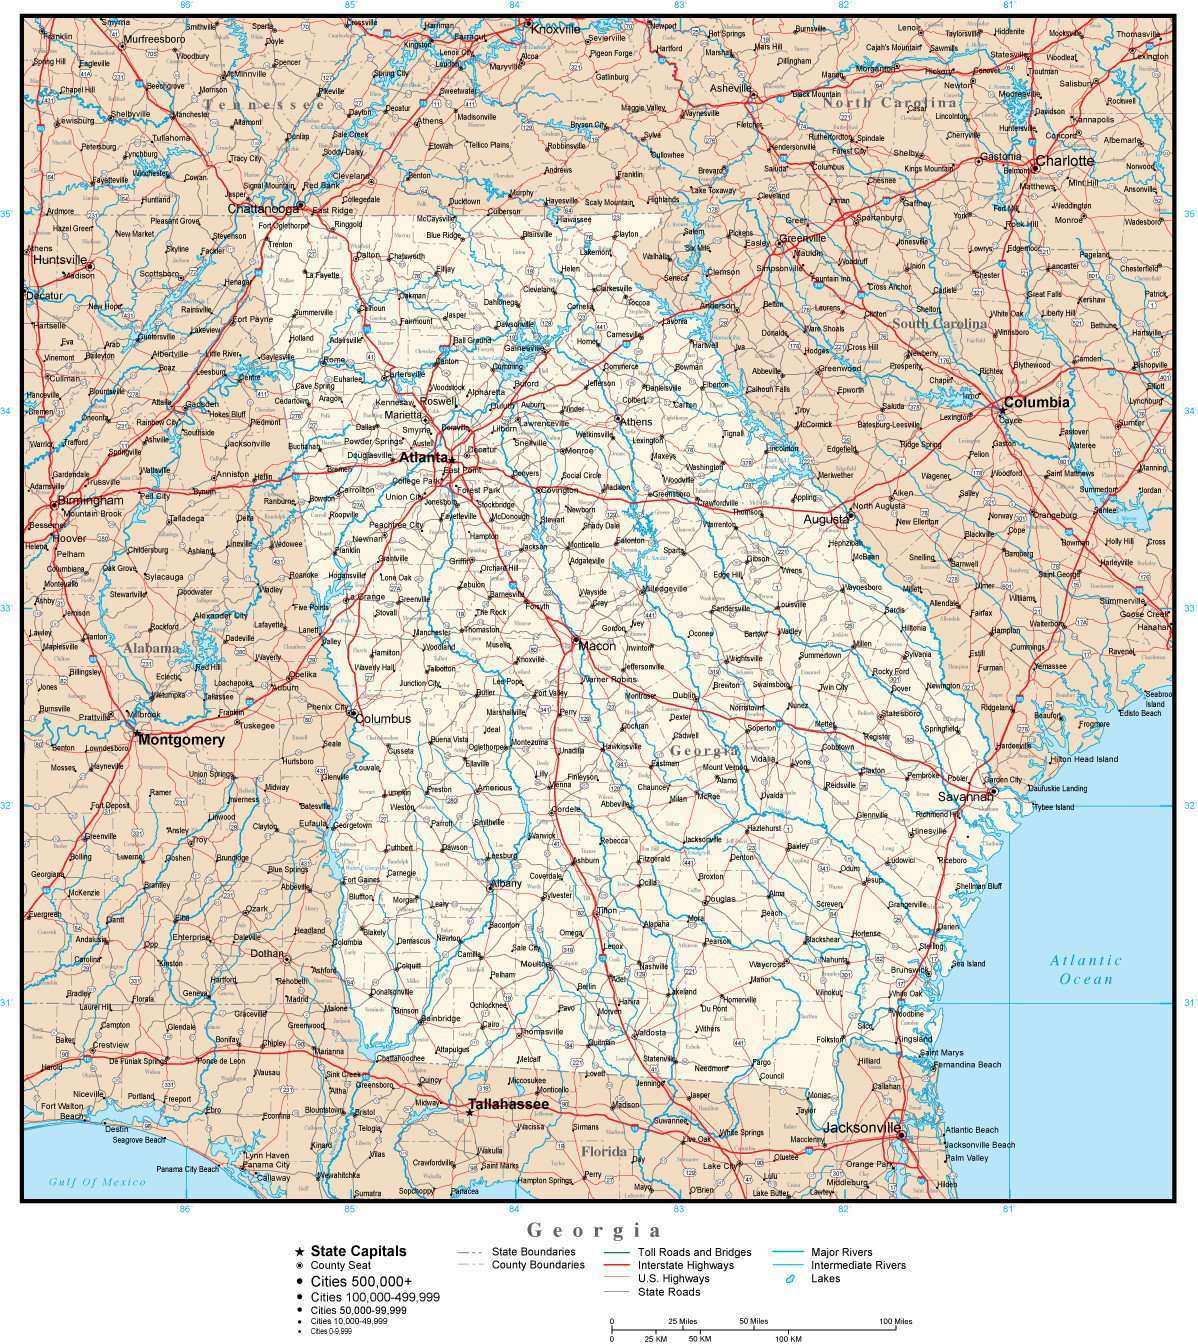 County Map Of Georgia With Roads.Georgia Map With Capital County Boundaries Cities Roads And Water Features